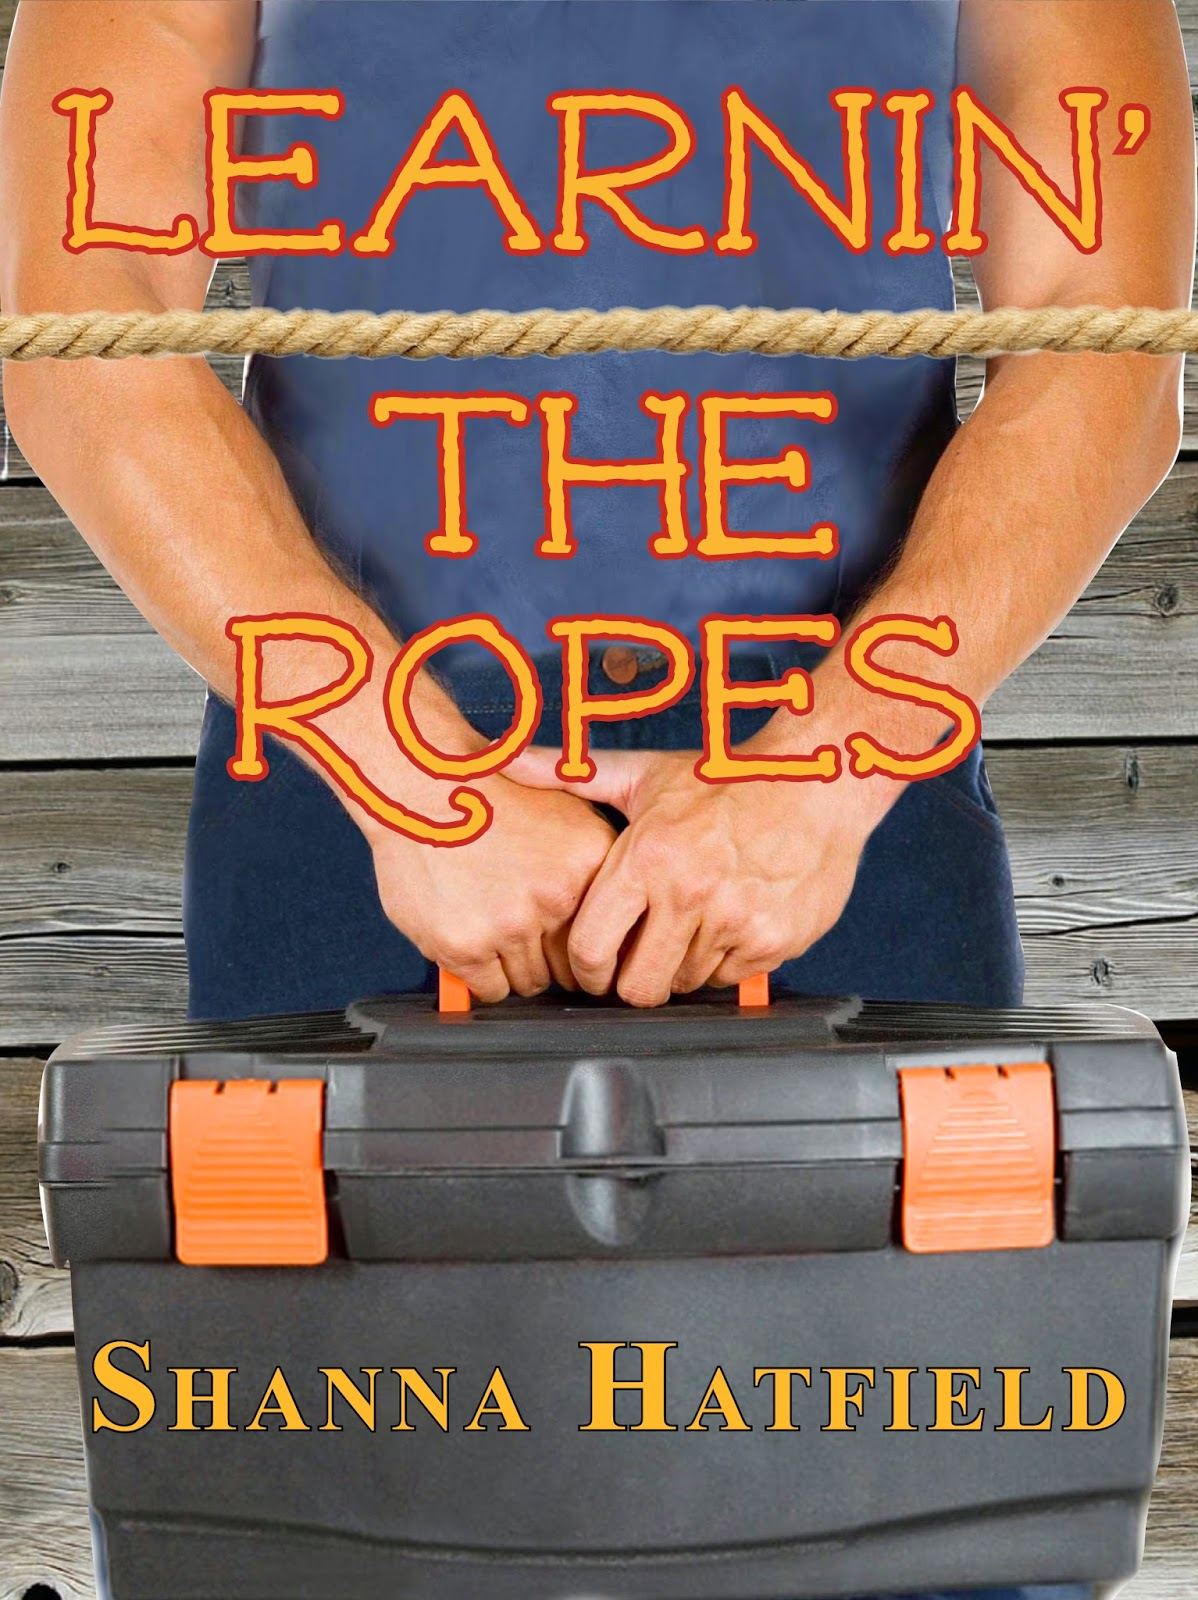 http://www.amazon.com/Learnin-Ropes-Shanna-Hatfield-ebook/dp/B008FGV4SI/ref=sr_1_1?ie=UTF8&qid=1420739135&sr=8-1&keywords=learnin%27+the+ropes